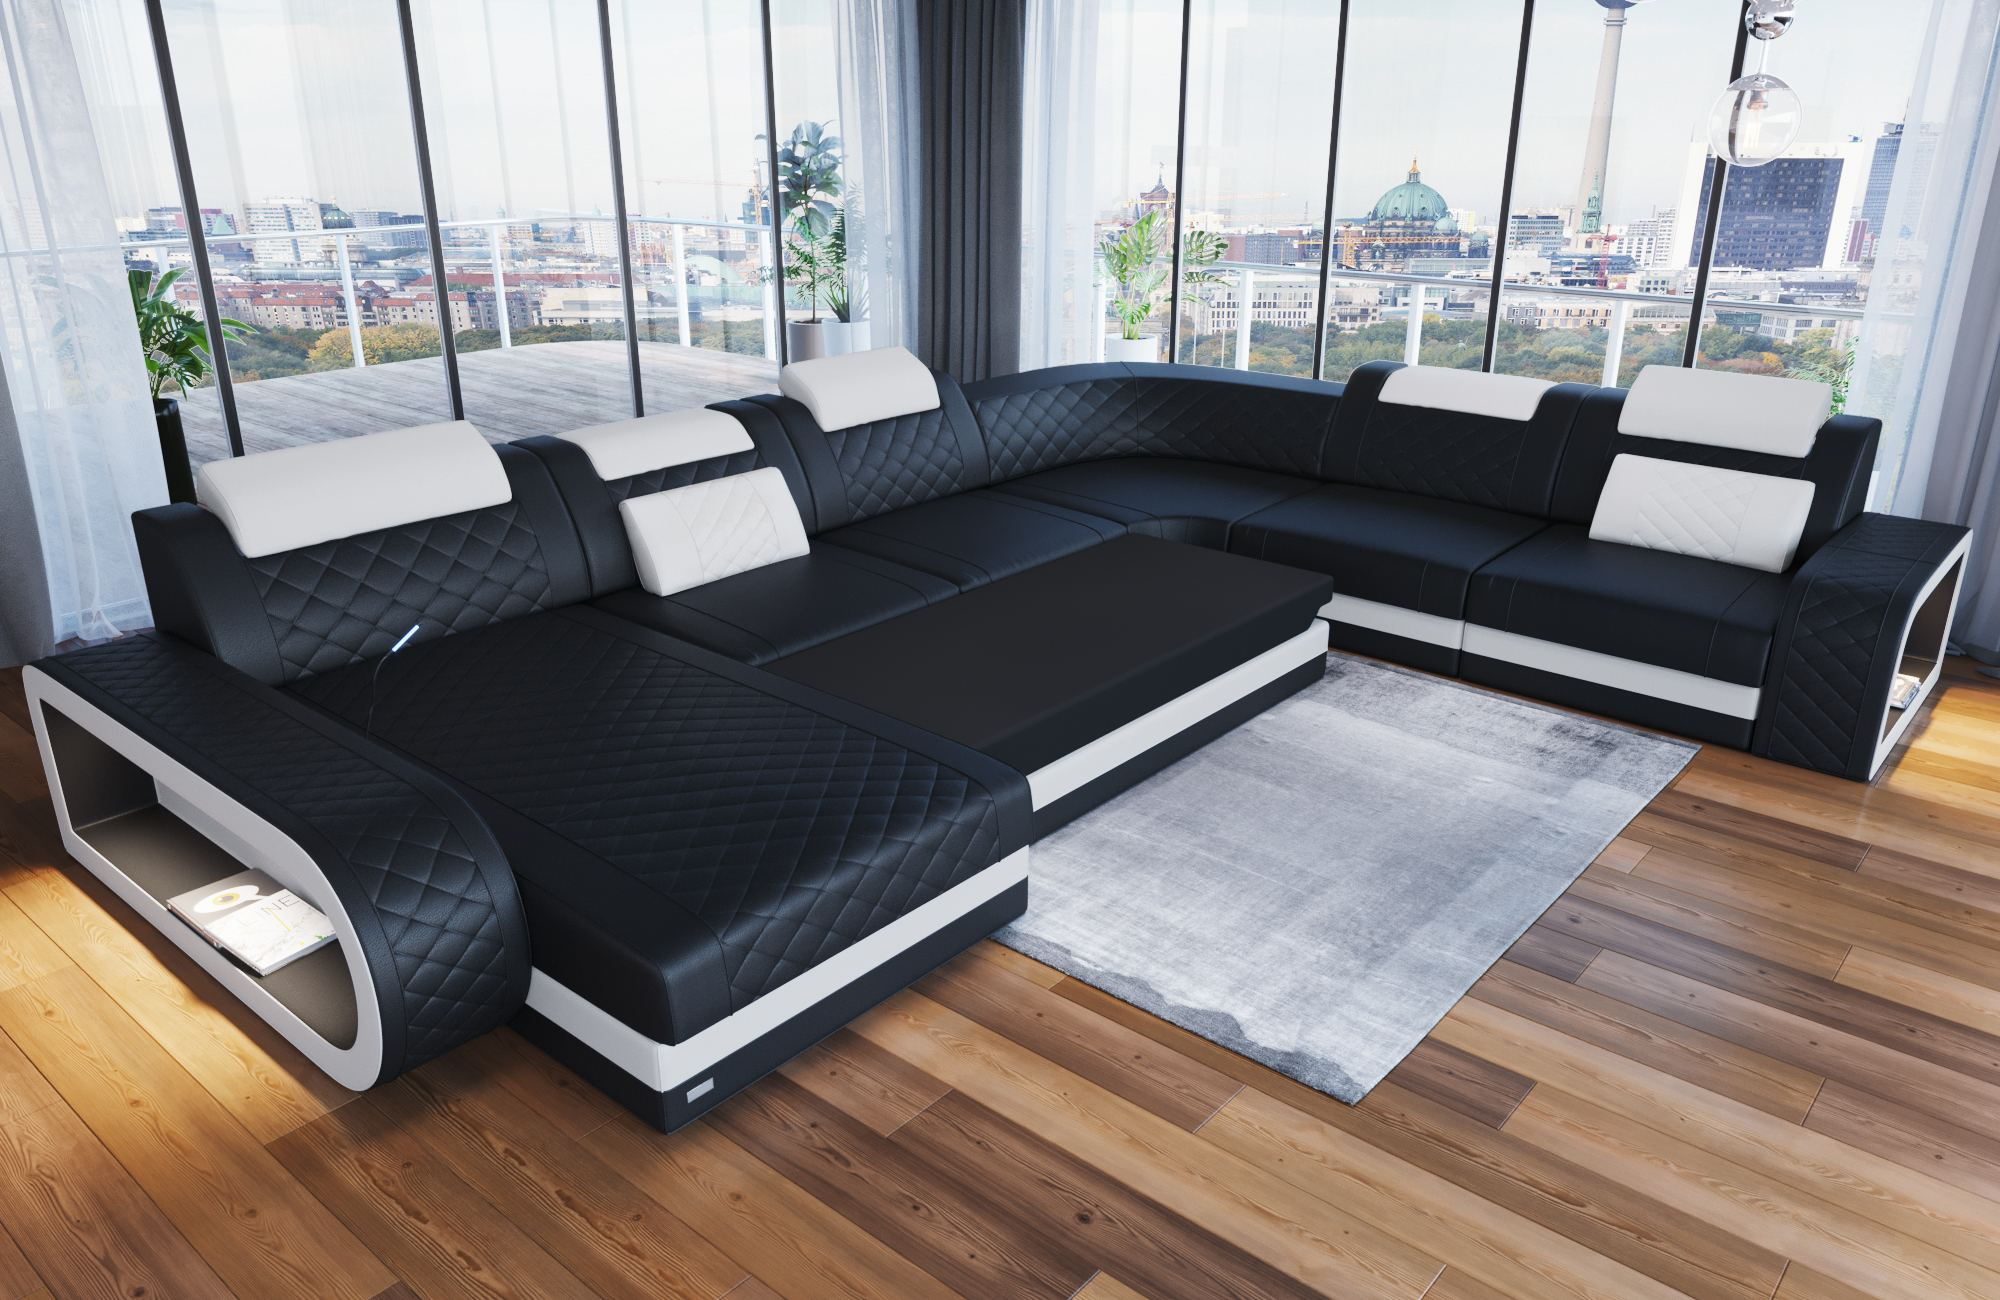 Sofa Funktion Details About Luxury Sectional Sofa Charlotte Xl Led Lights Genuine Leather Design